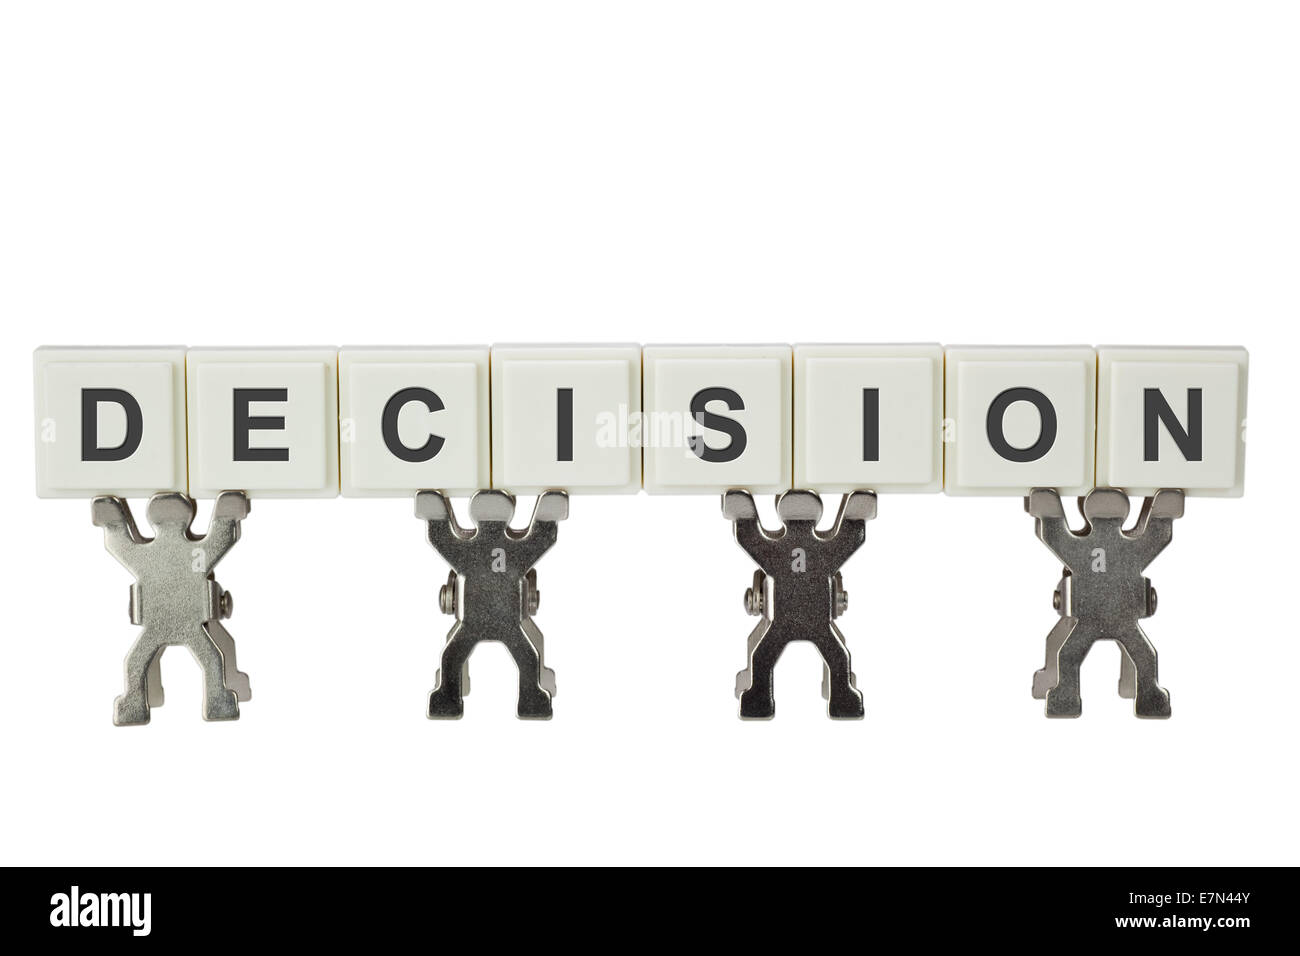 Group of figurines with the word DECISION isolated on white background - Stock Image